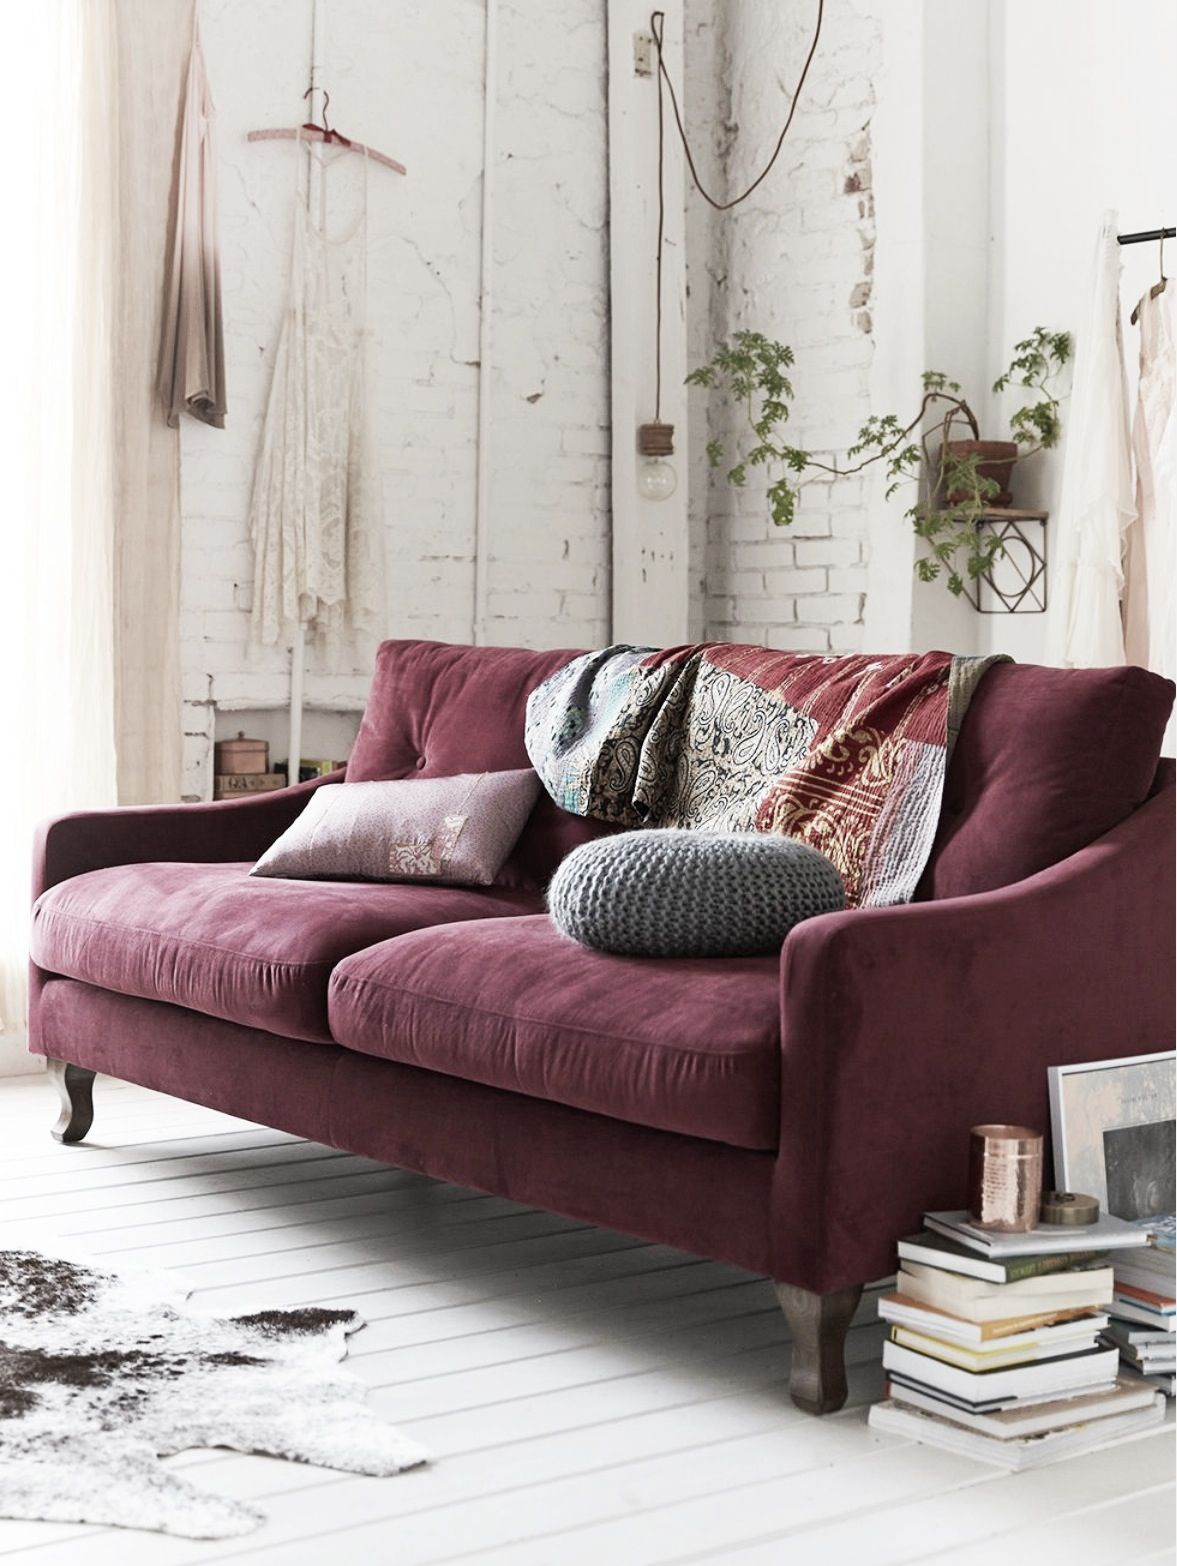 Pink Sofas An Unexpected Touch Of Color In The Living Room Home Living Room Home Decor Accessories Home